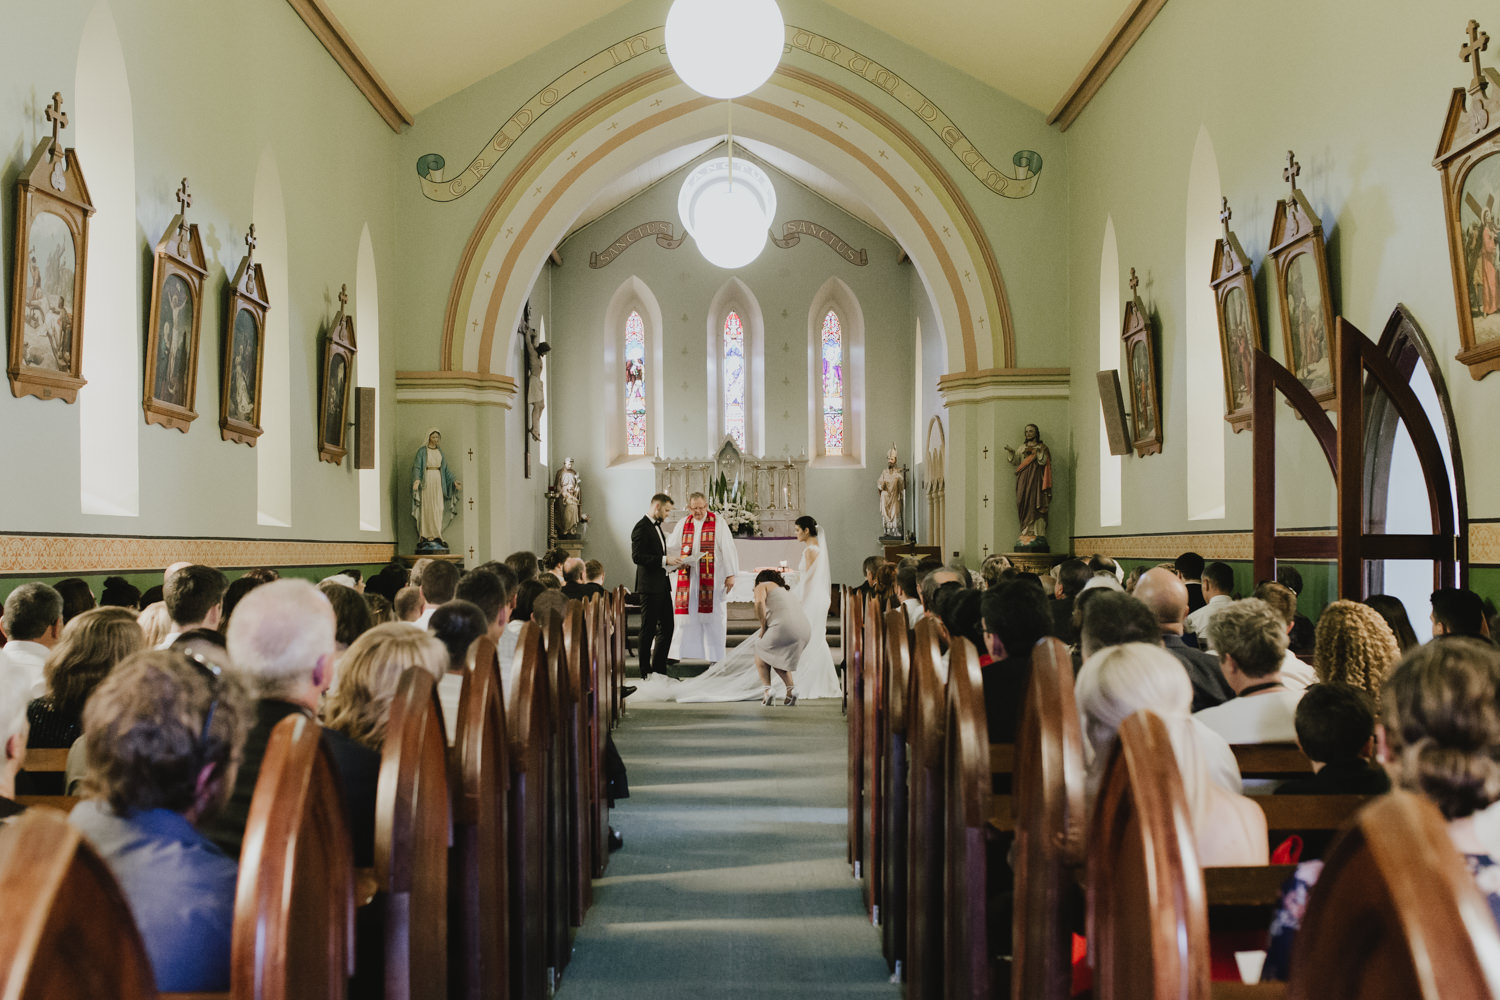 Fitters Workshop Wedding St Gregory's Church Photography by Jenny Wu Straight No Chaser Canberra